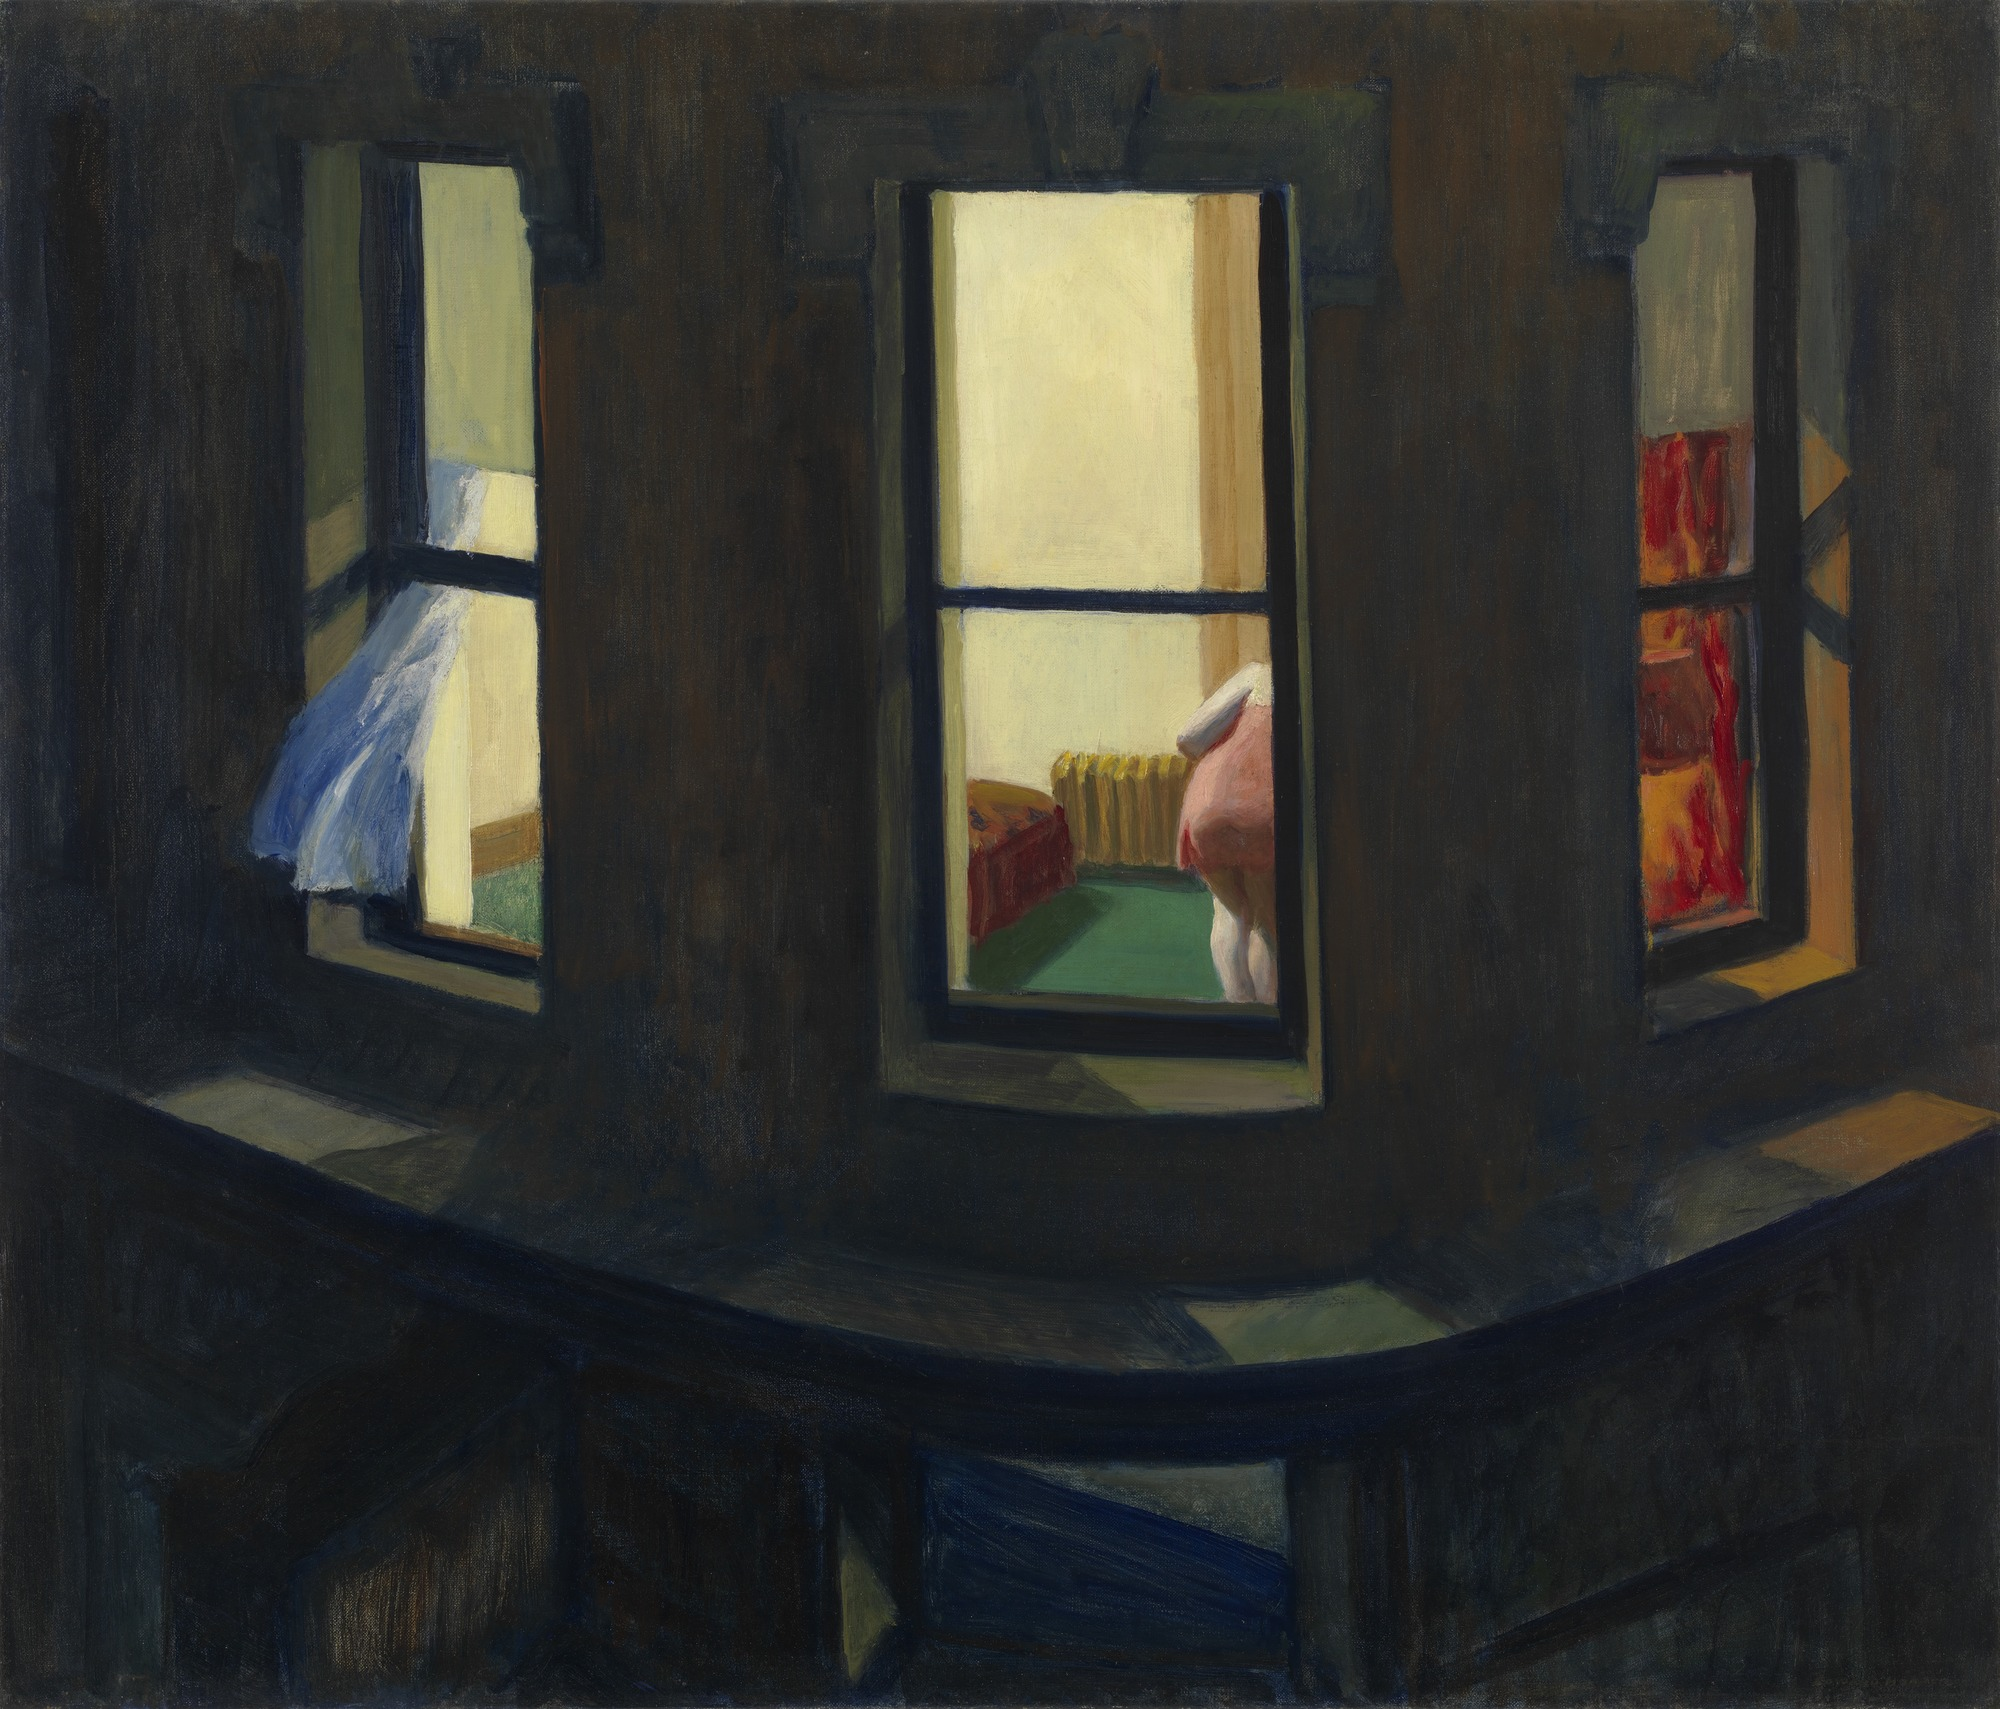 Edward Hopper, Night Windows, 1928